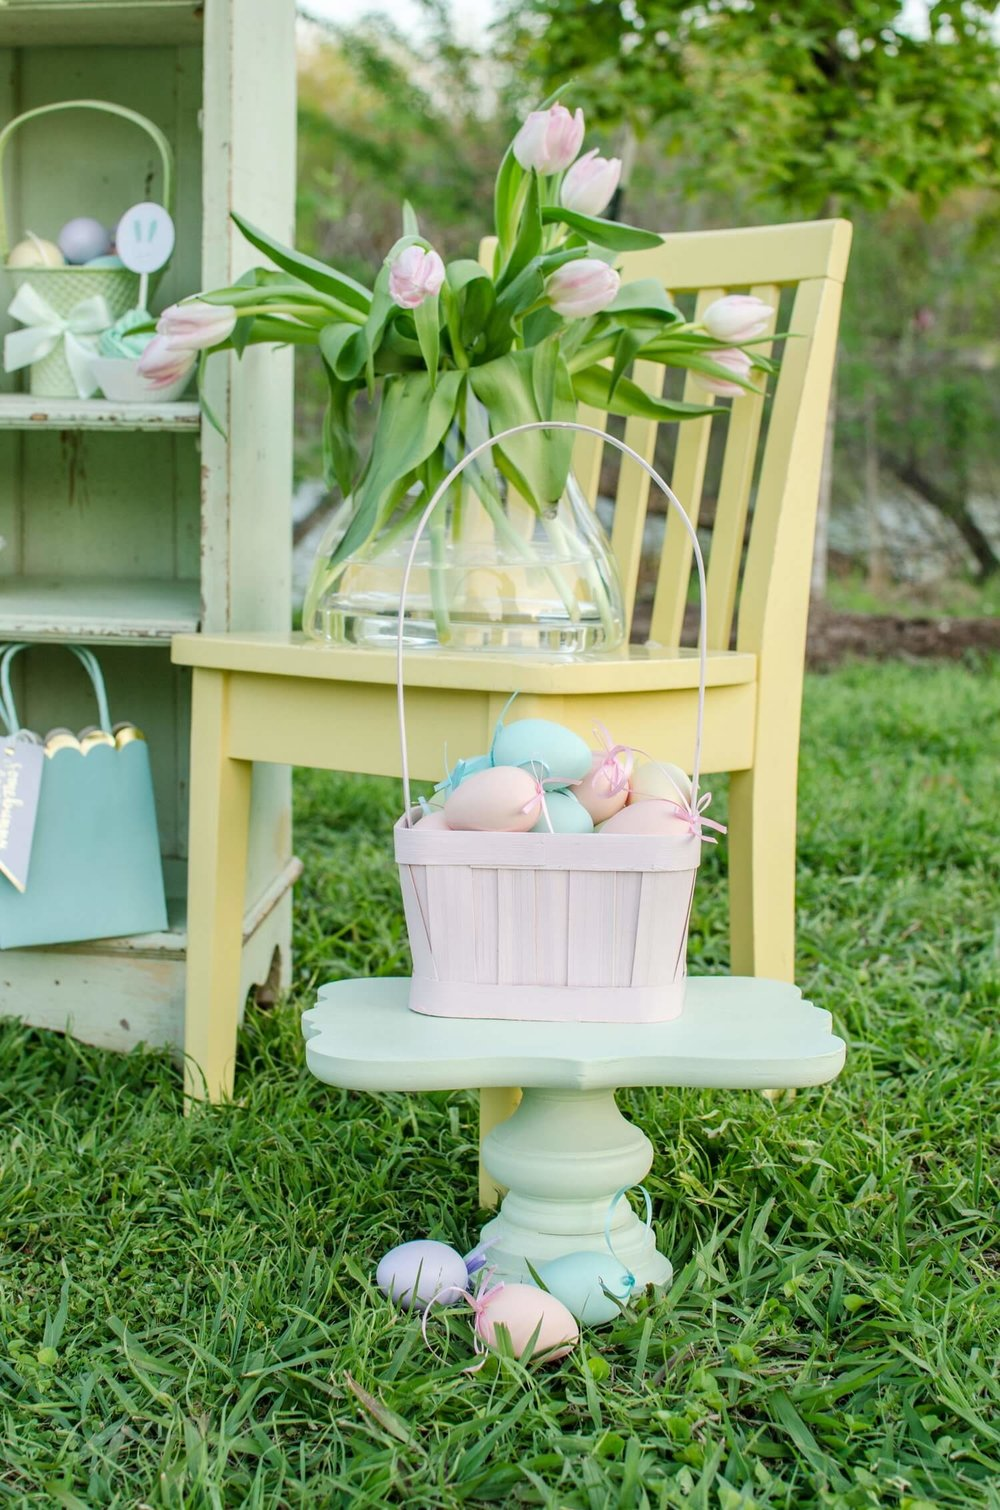 Dress up your Easter Garden Party dessert table with a pretty wooden chair that holds a fresh bouquet of tulips and a cute basket of eggs on a cake stand. See more Easter Garden Party Ideas for Kids on Mint Event Design www.minteventdesign.com #easterparty #gardenparty #partyideas